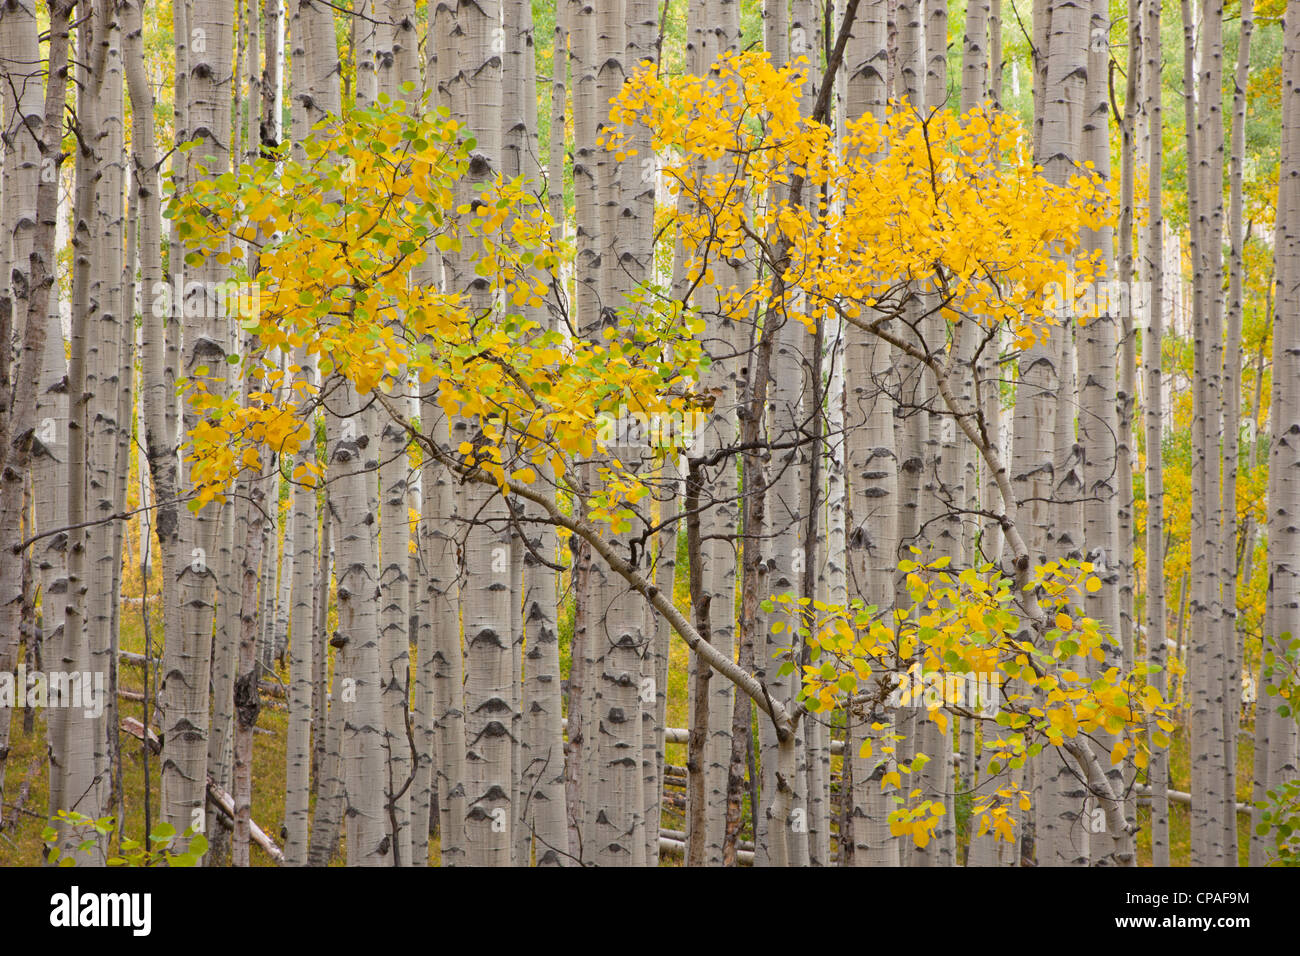 USA, Colorado, White River National Forest. A stand of aspen trees in autumn color - Stock Image